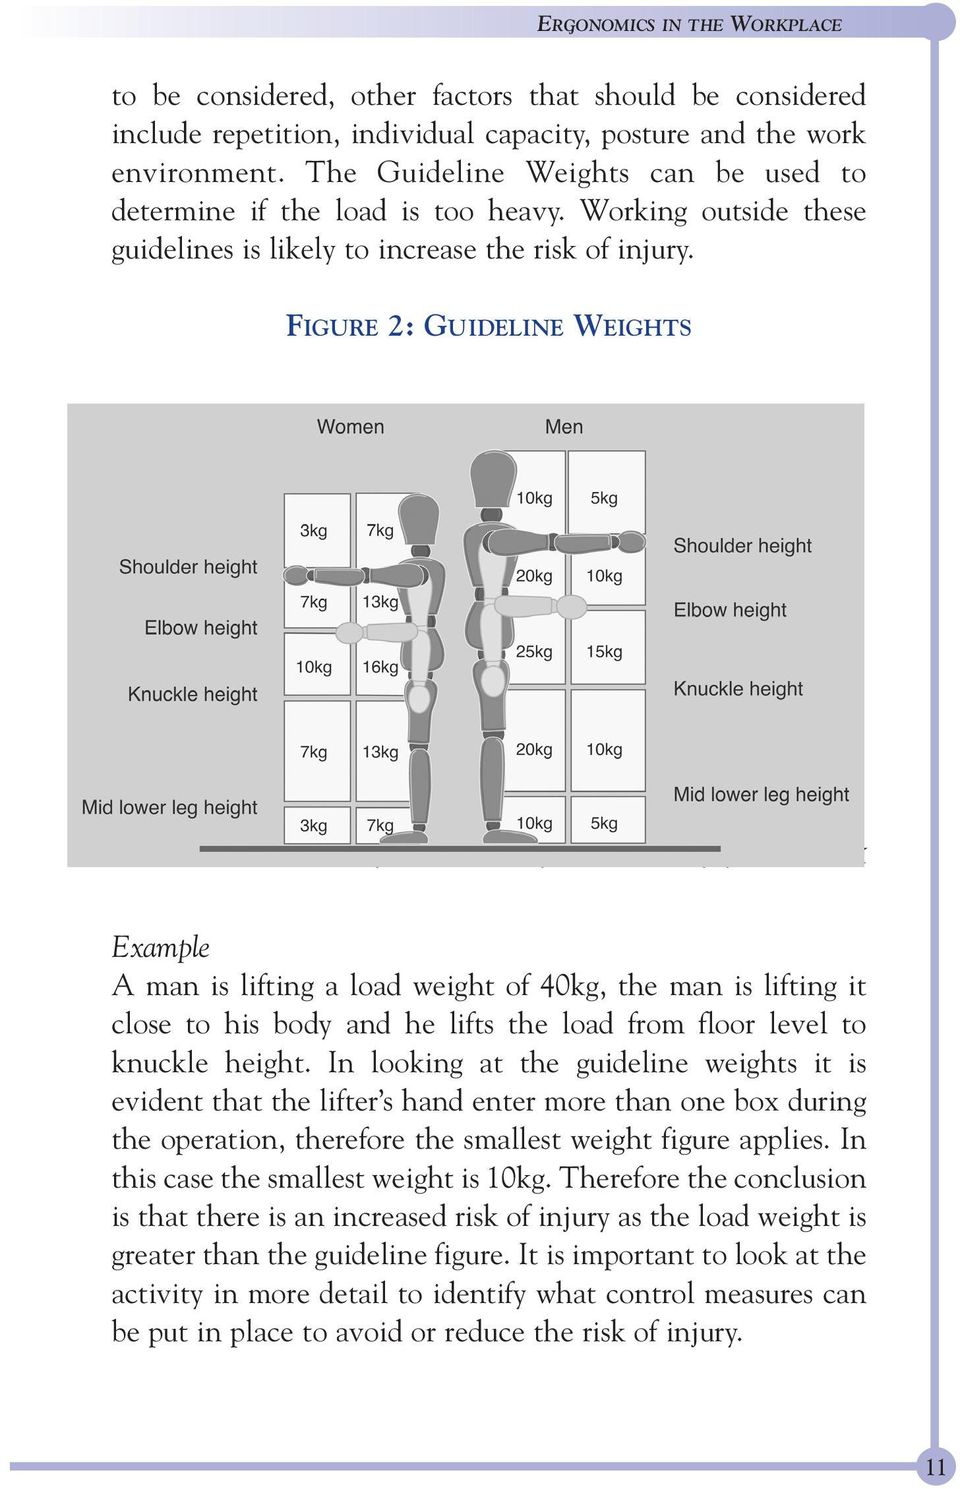 FIGURE 2: GUIDELINE WEIGHTS Used by Kind Permission of the Health and Safety Executive, UK Example A man is lifting a load weight of 40kg, the man is lifting it close to his body and he lifts the